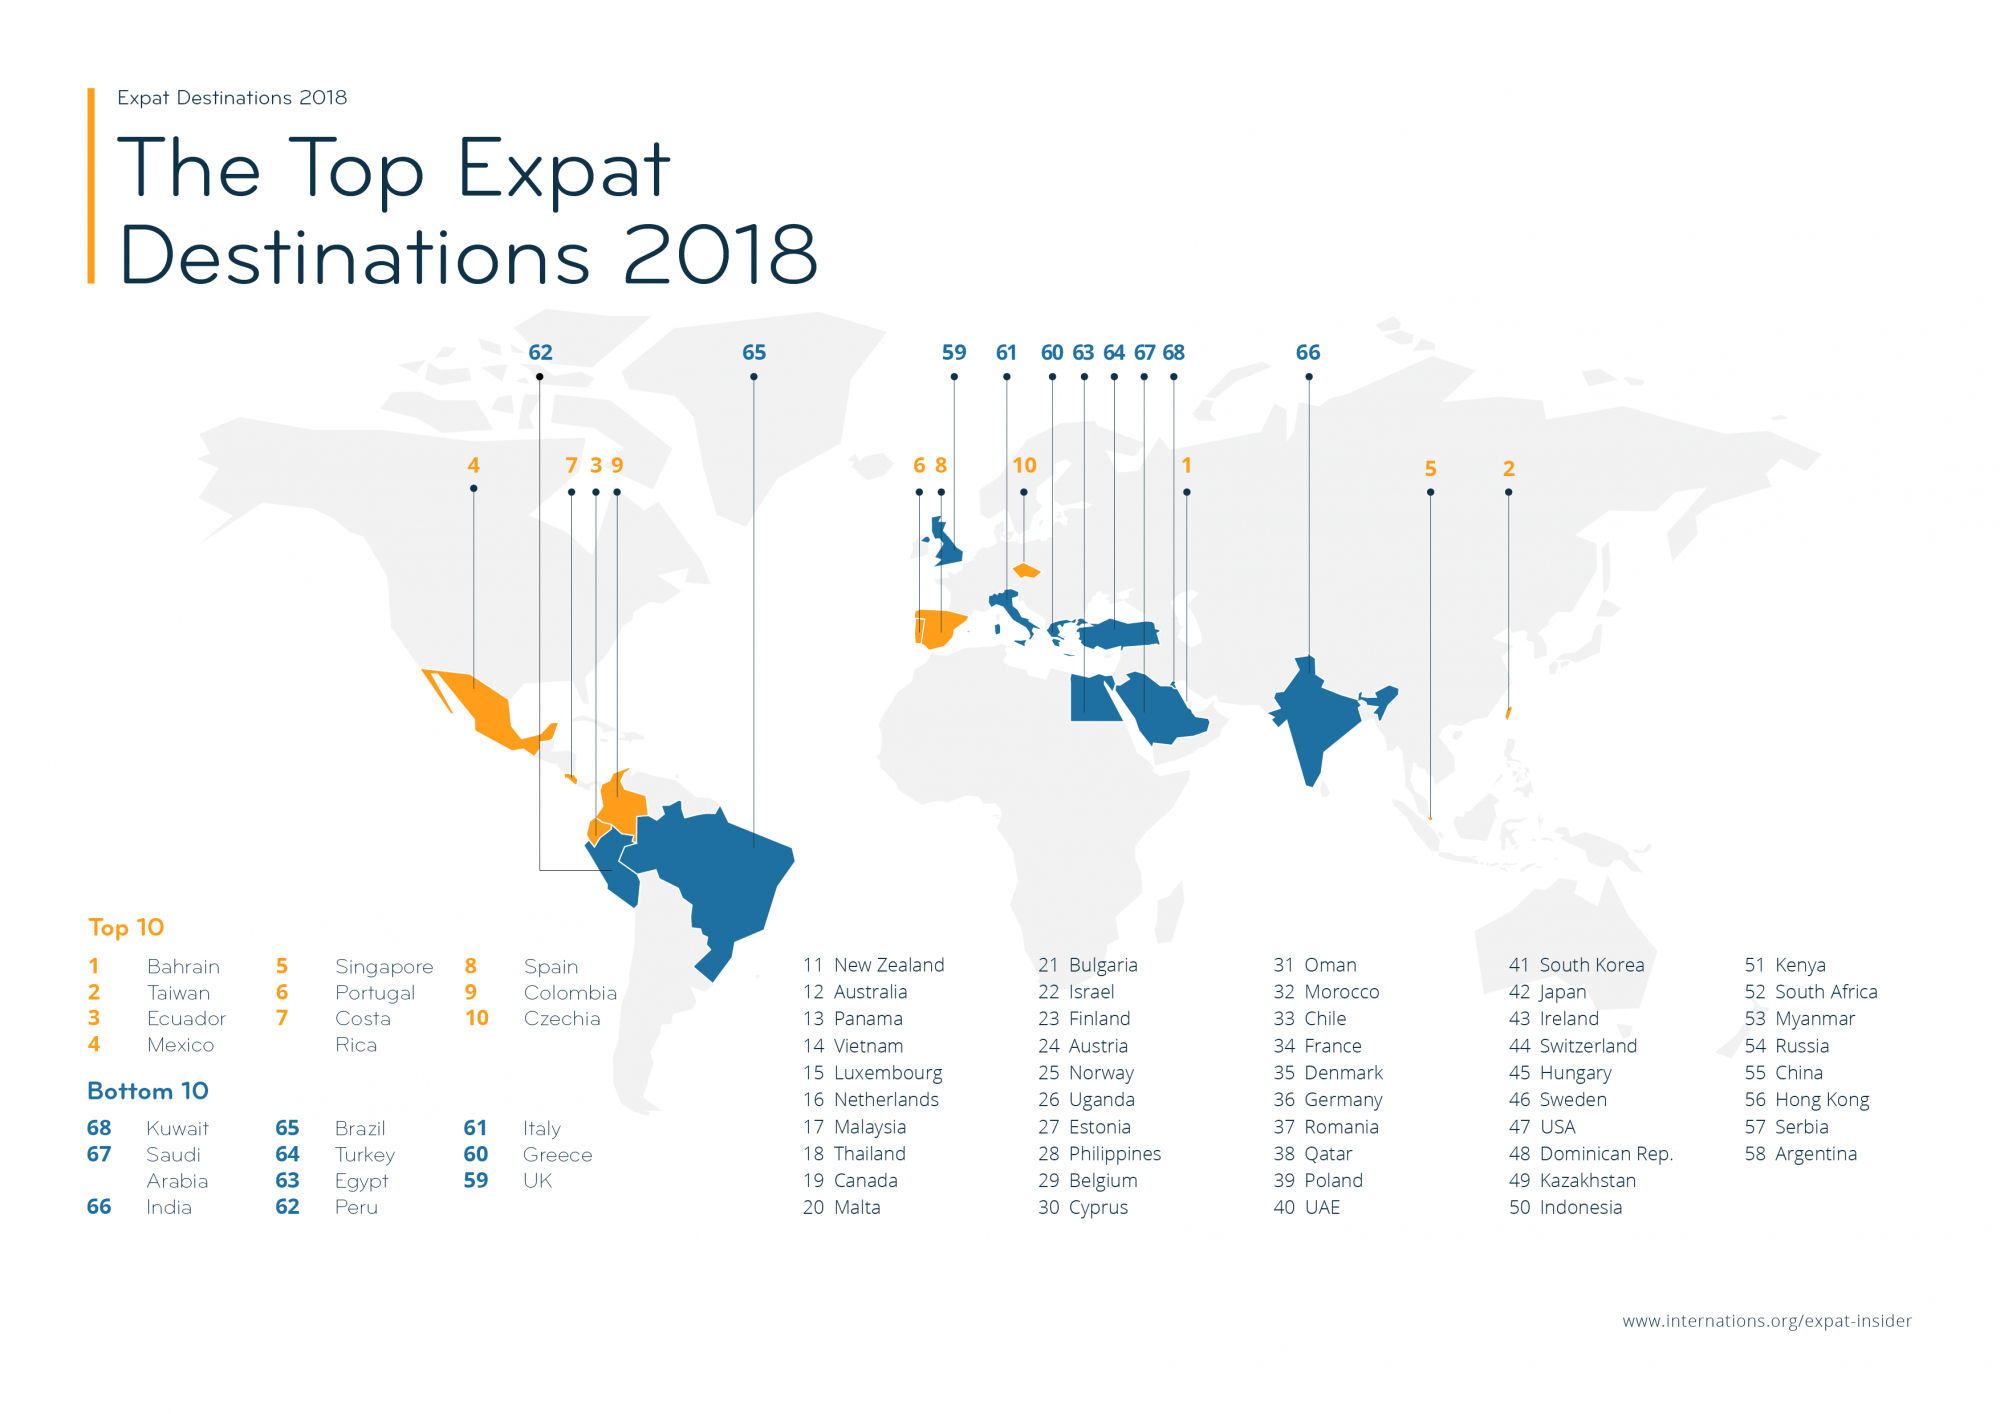 The Top Expat Destinations 2018